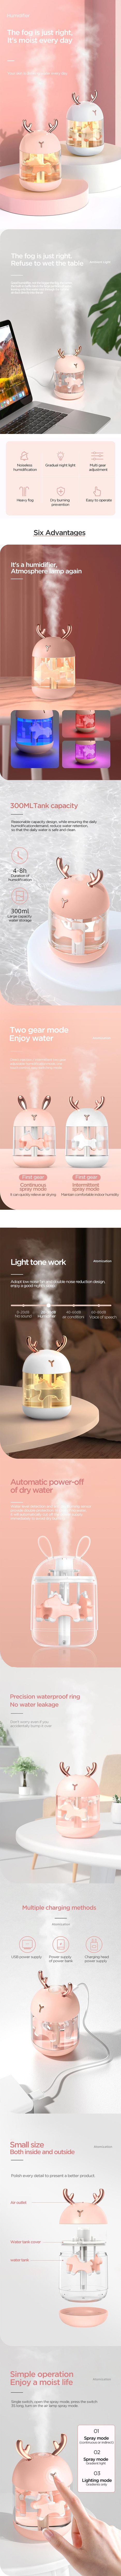 Smart Animal Humidifier details